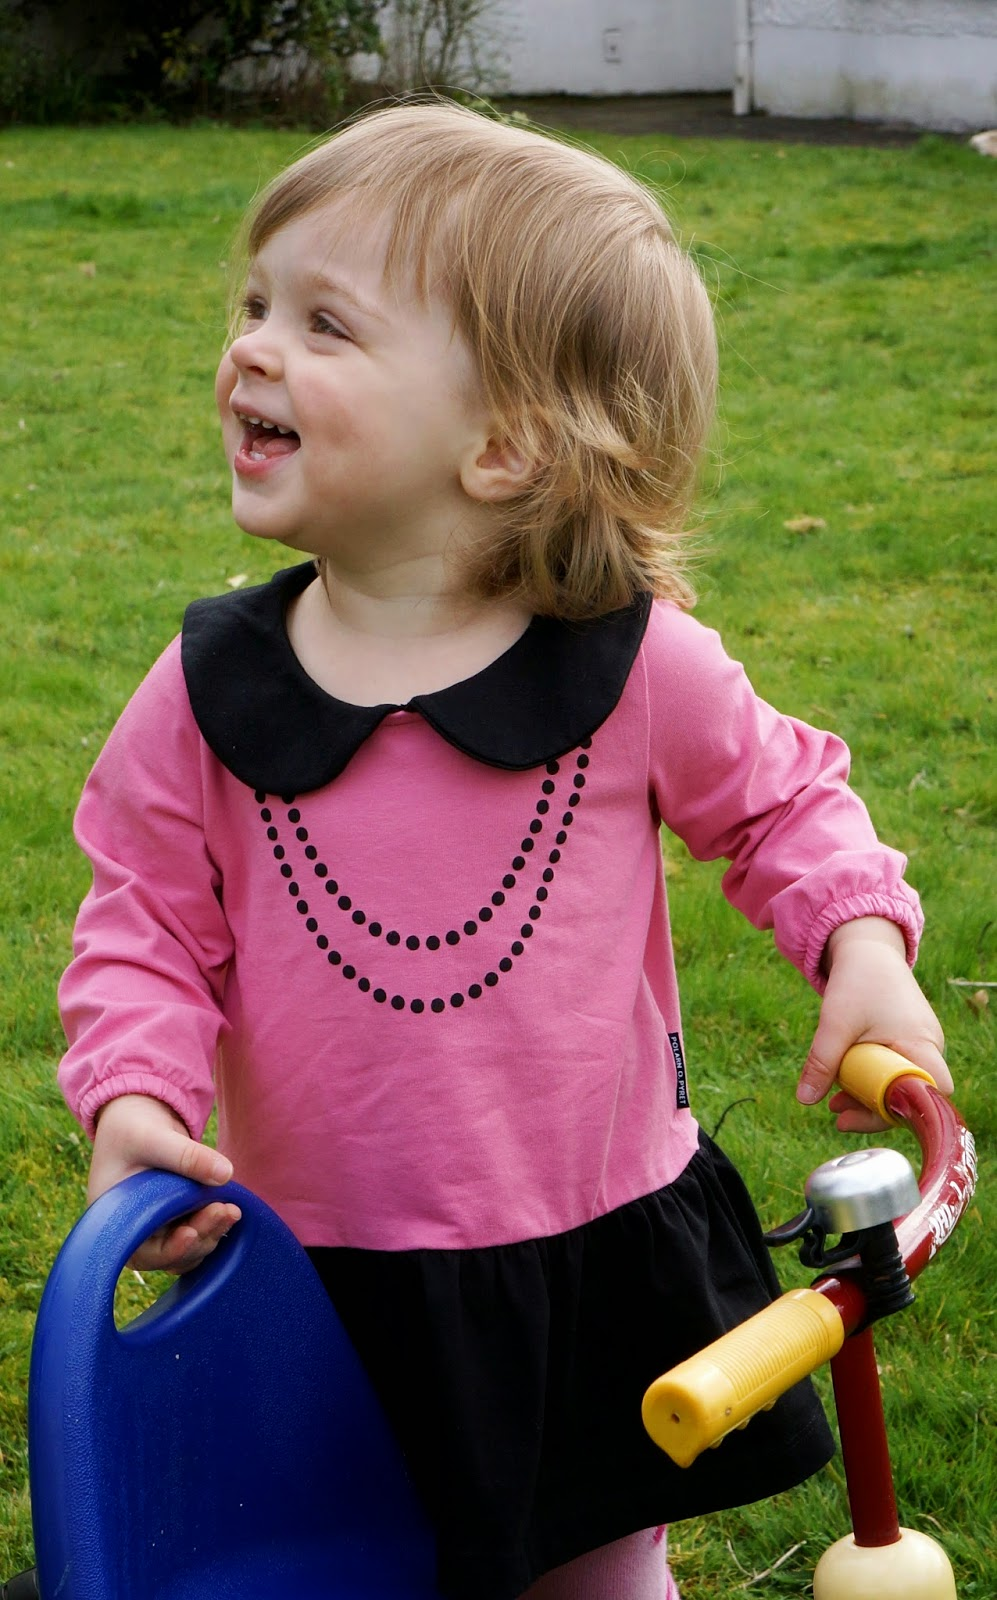 smiling toddler polarn o pyret dress with pearls